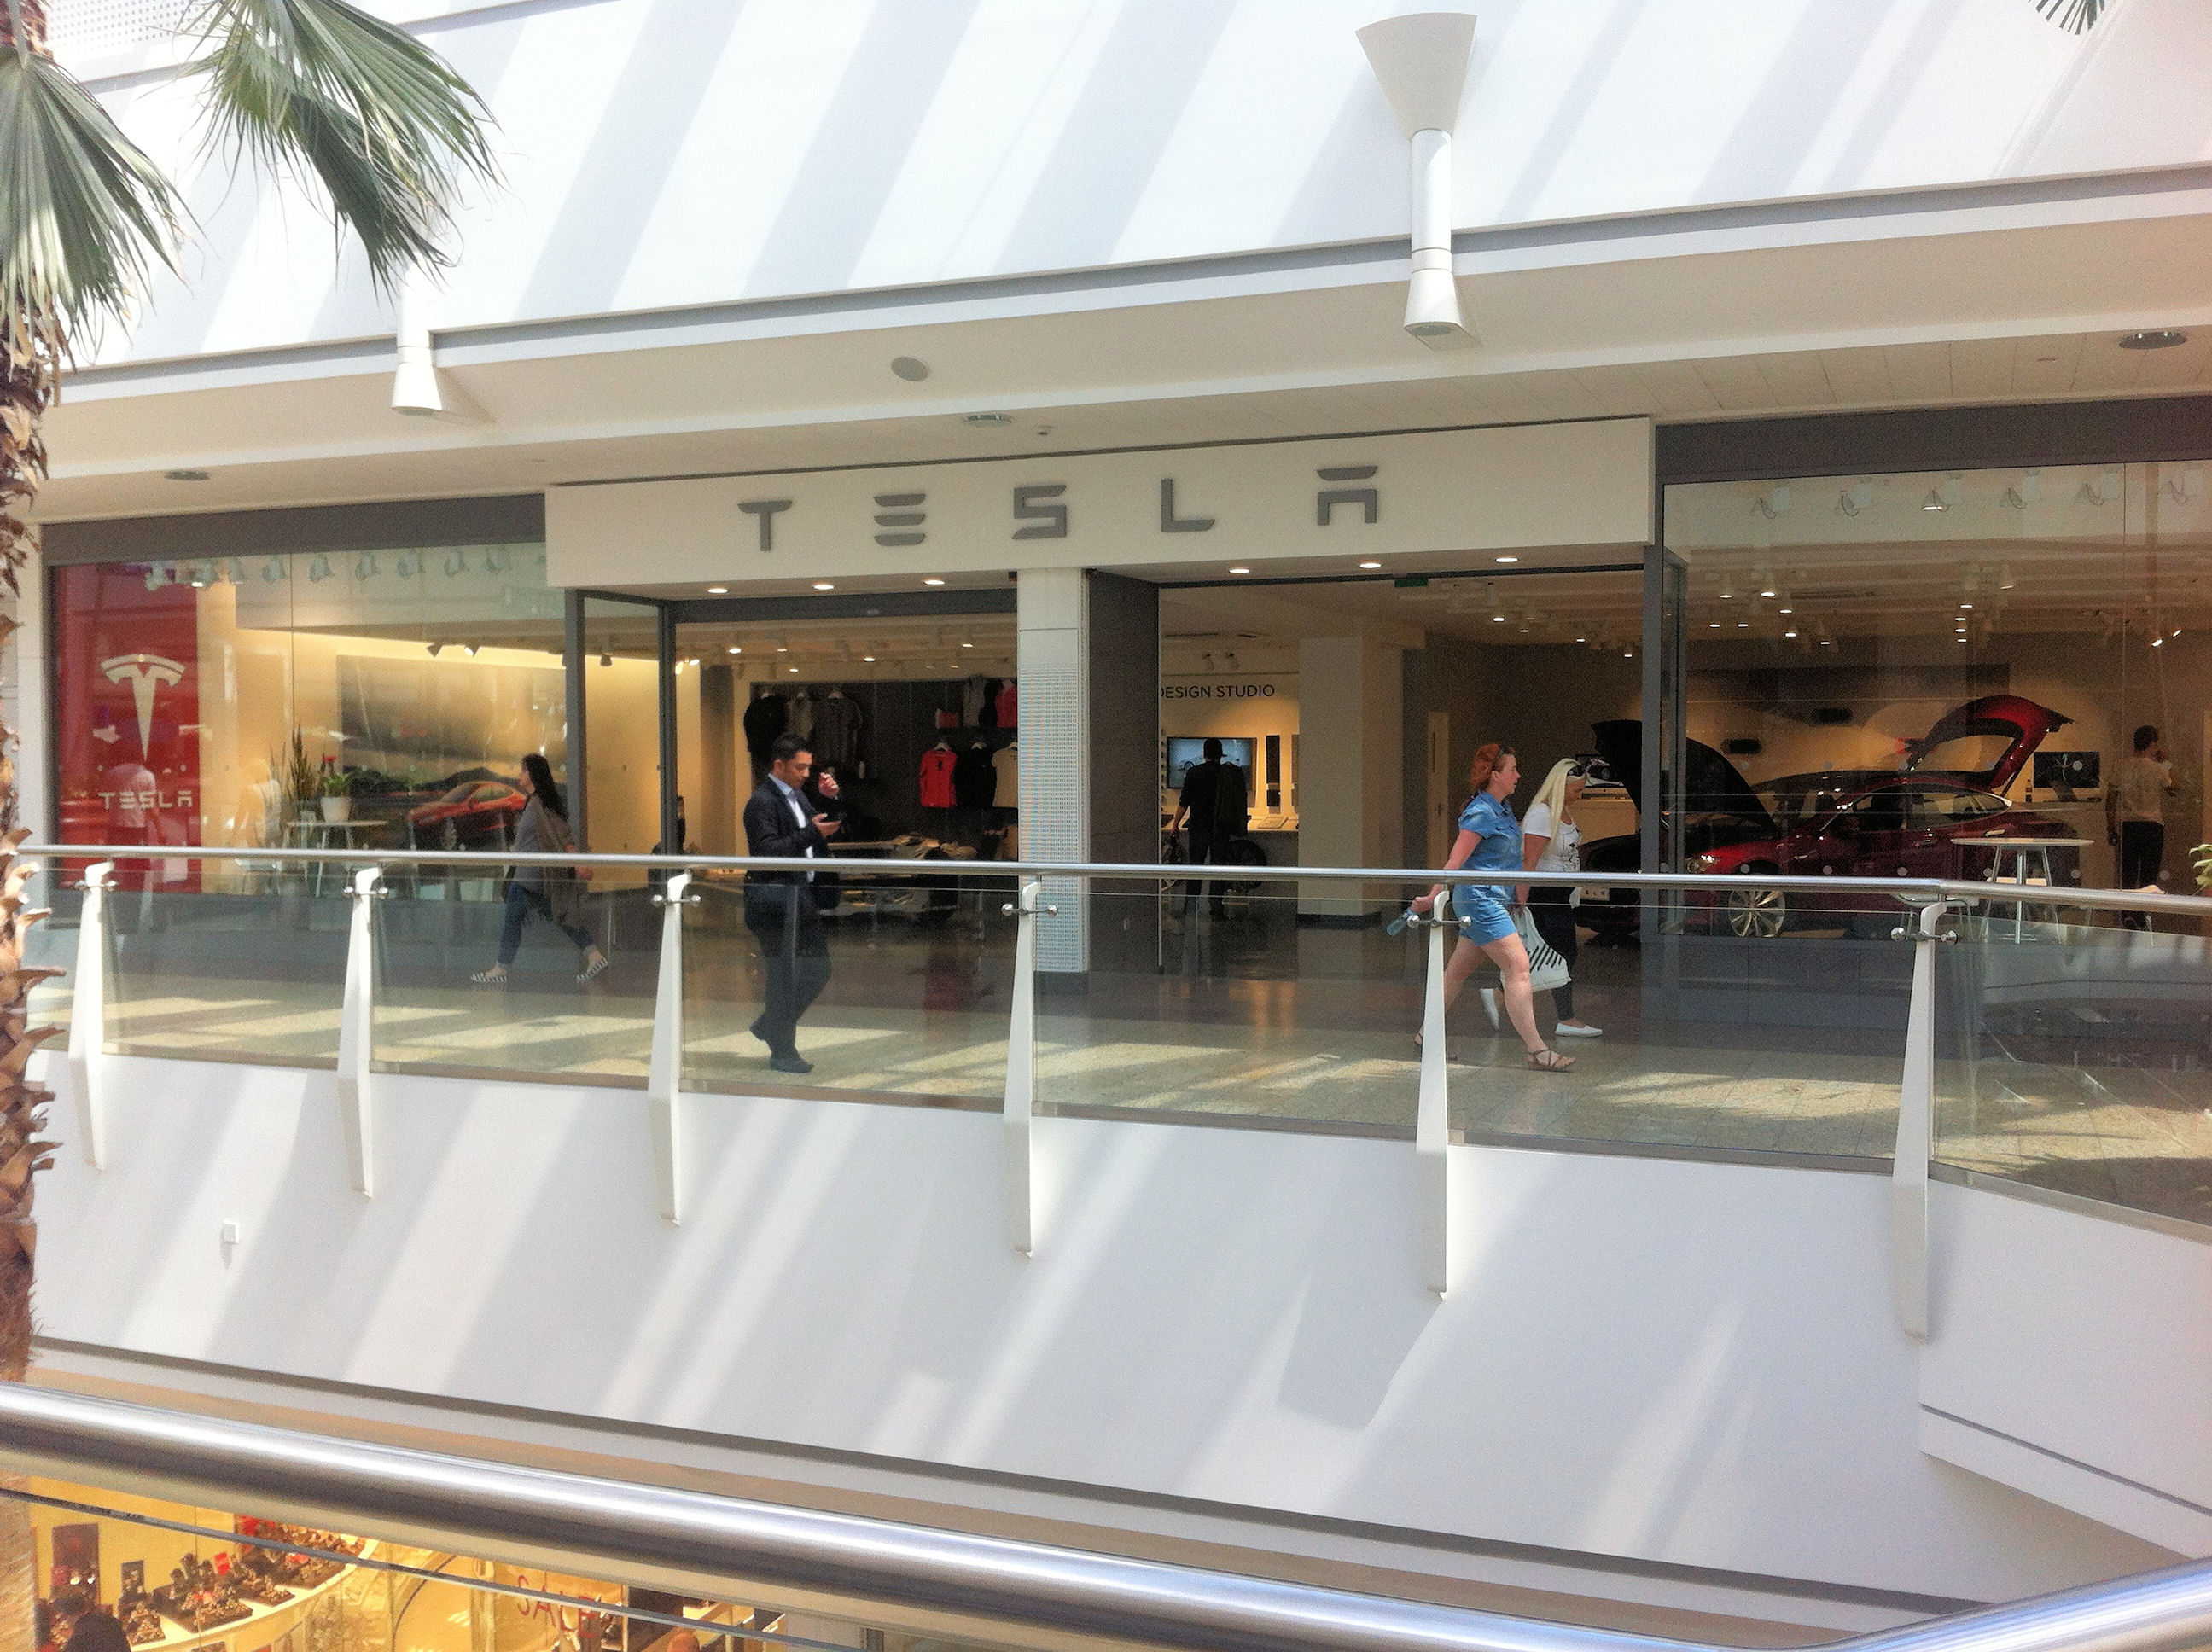 The TESLA showroom on the first floor at Cribbs Causeway shopping mall north of Bristol